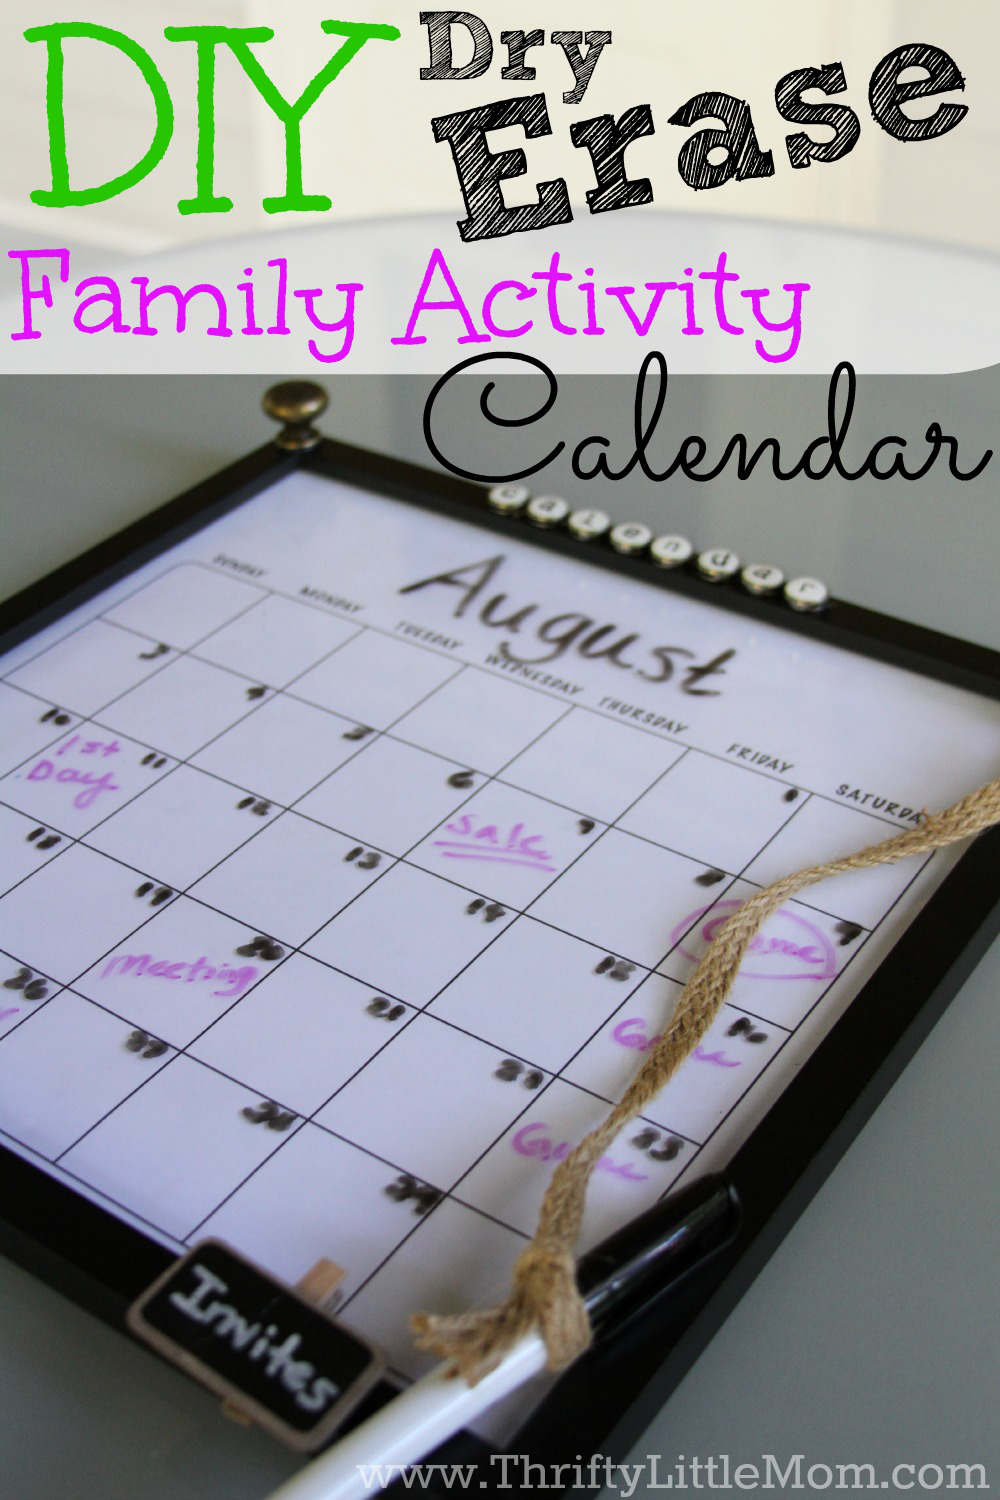 DIY Dry Erase Family Activity Calendar. Create a place to keep all your family schedules, invites and plans together in one spot and stay on top of your ever growing list of family activities